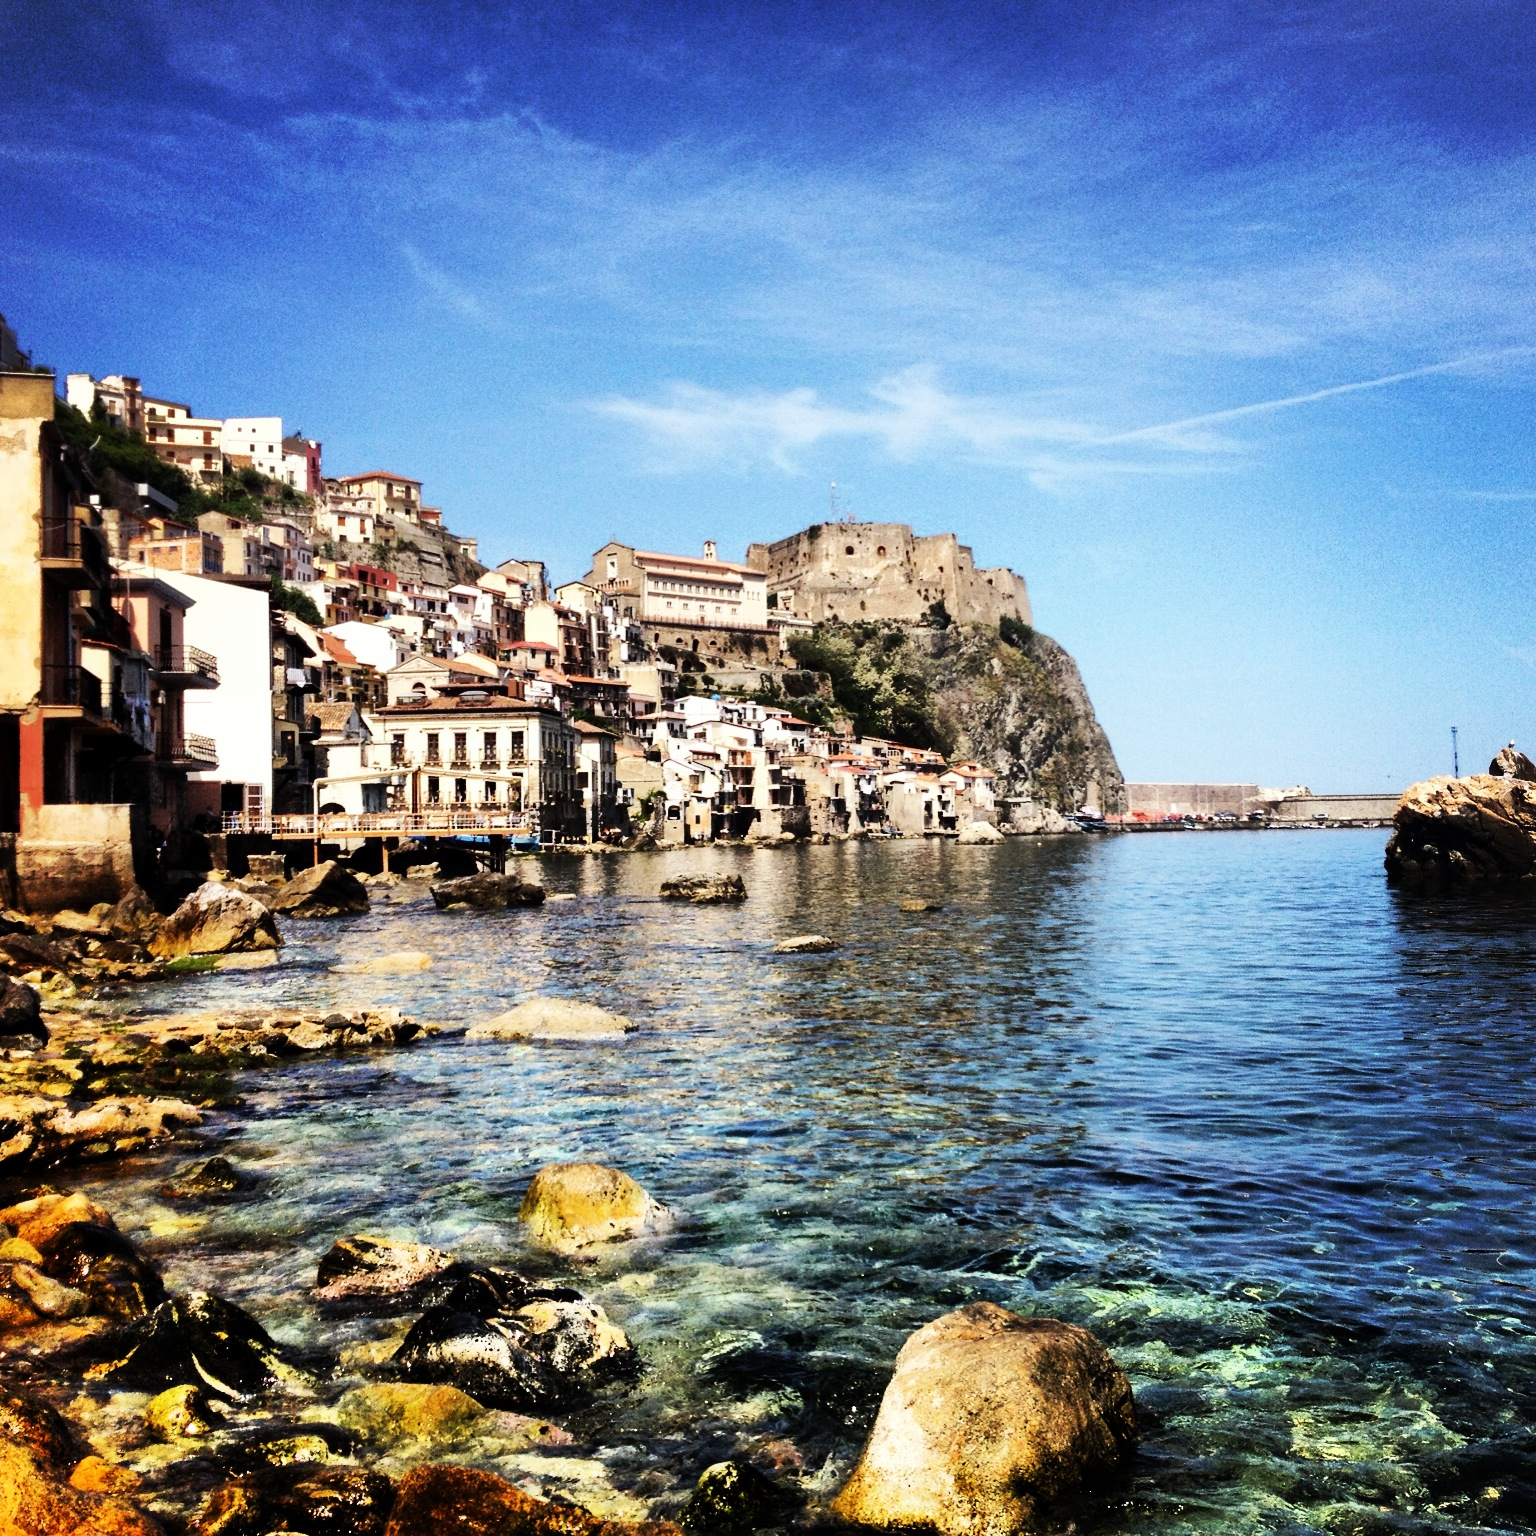 Scilla, Calabria: Beaches of Southern Italy